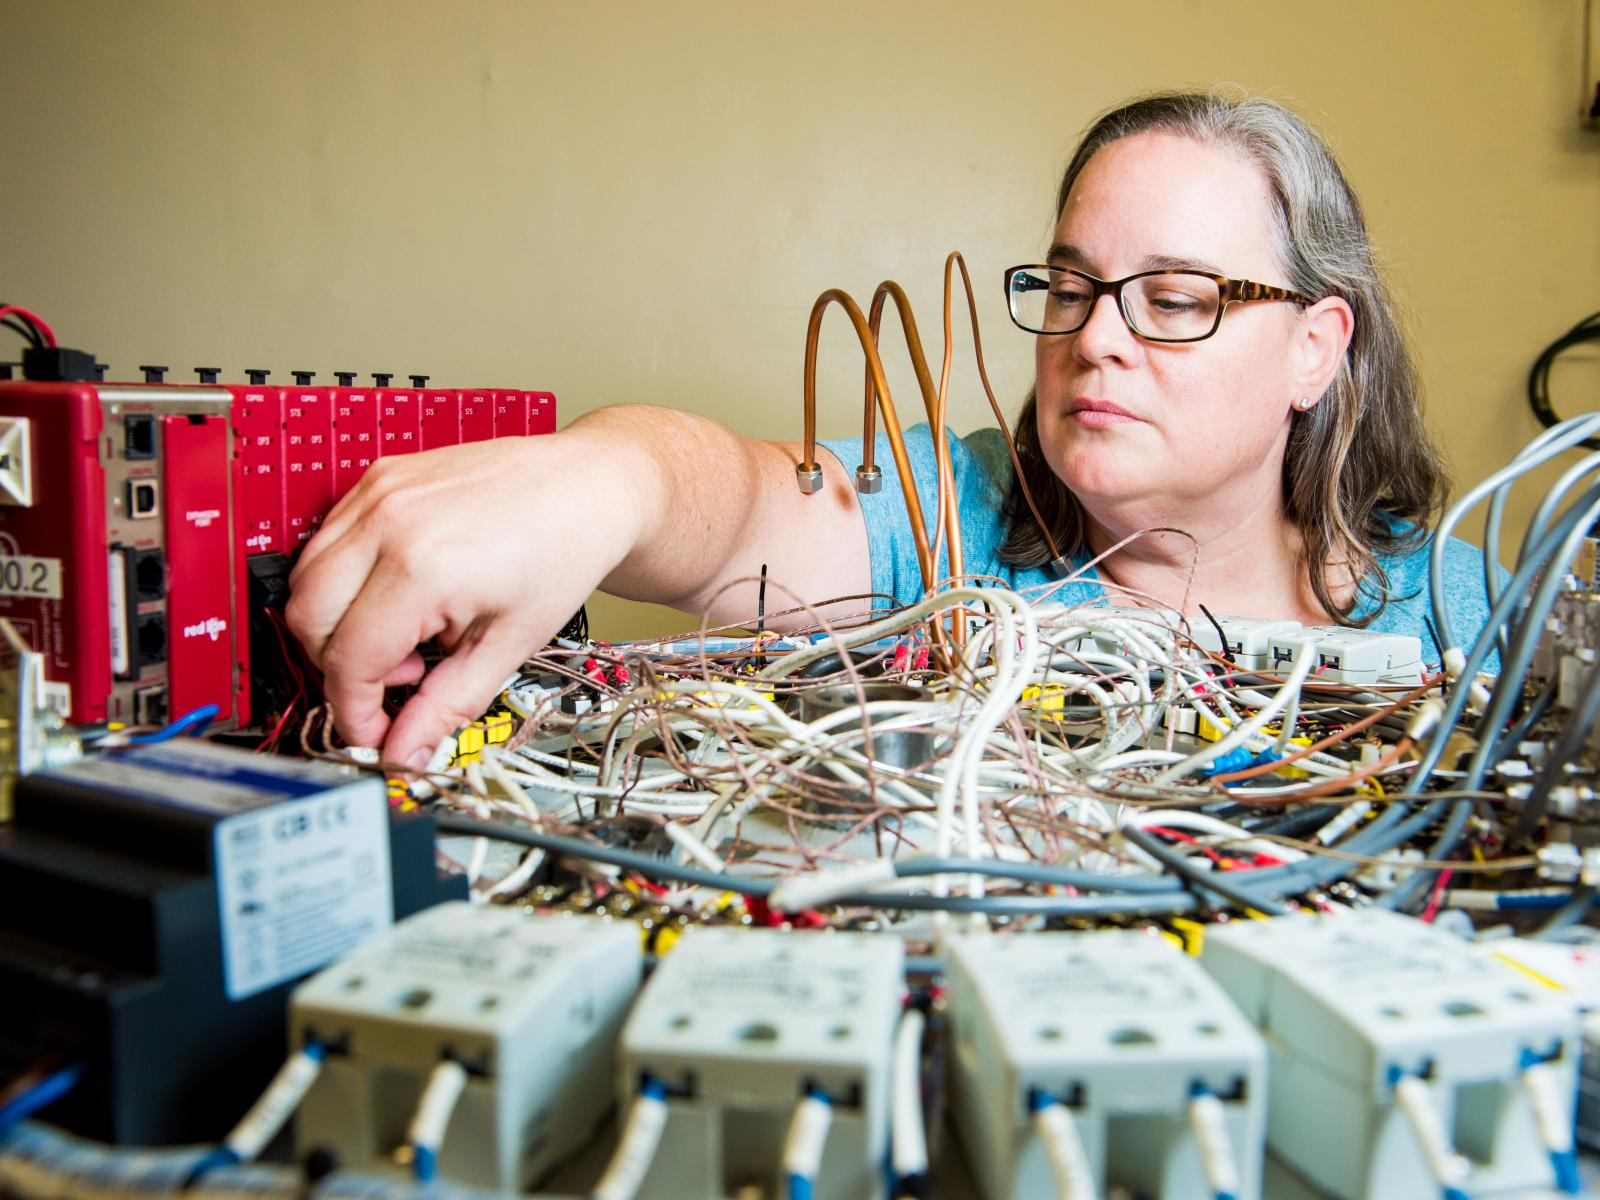 Researcher Heather Colburn reaches across a neck-high platform to connect wires on scientific equipment.